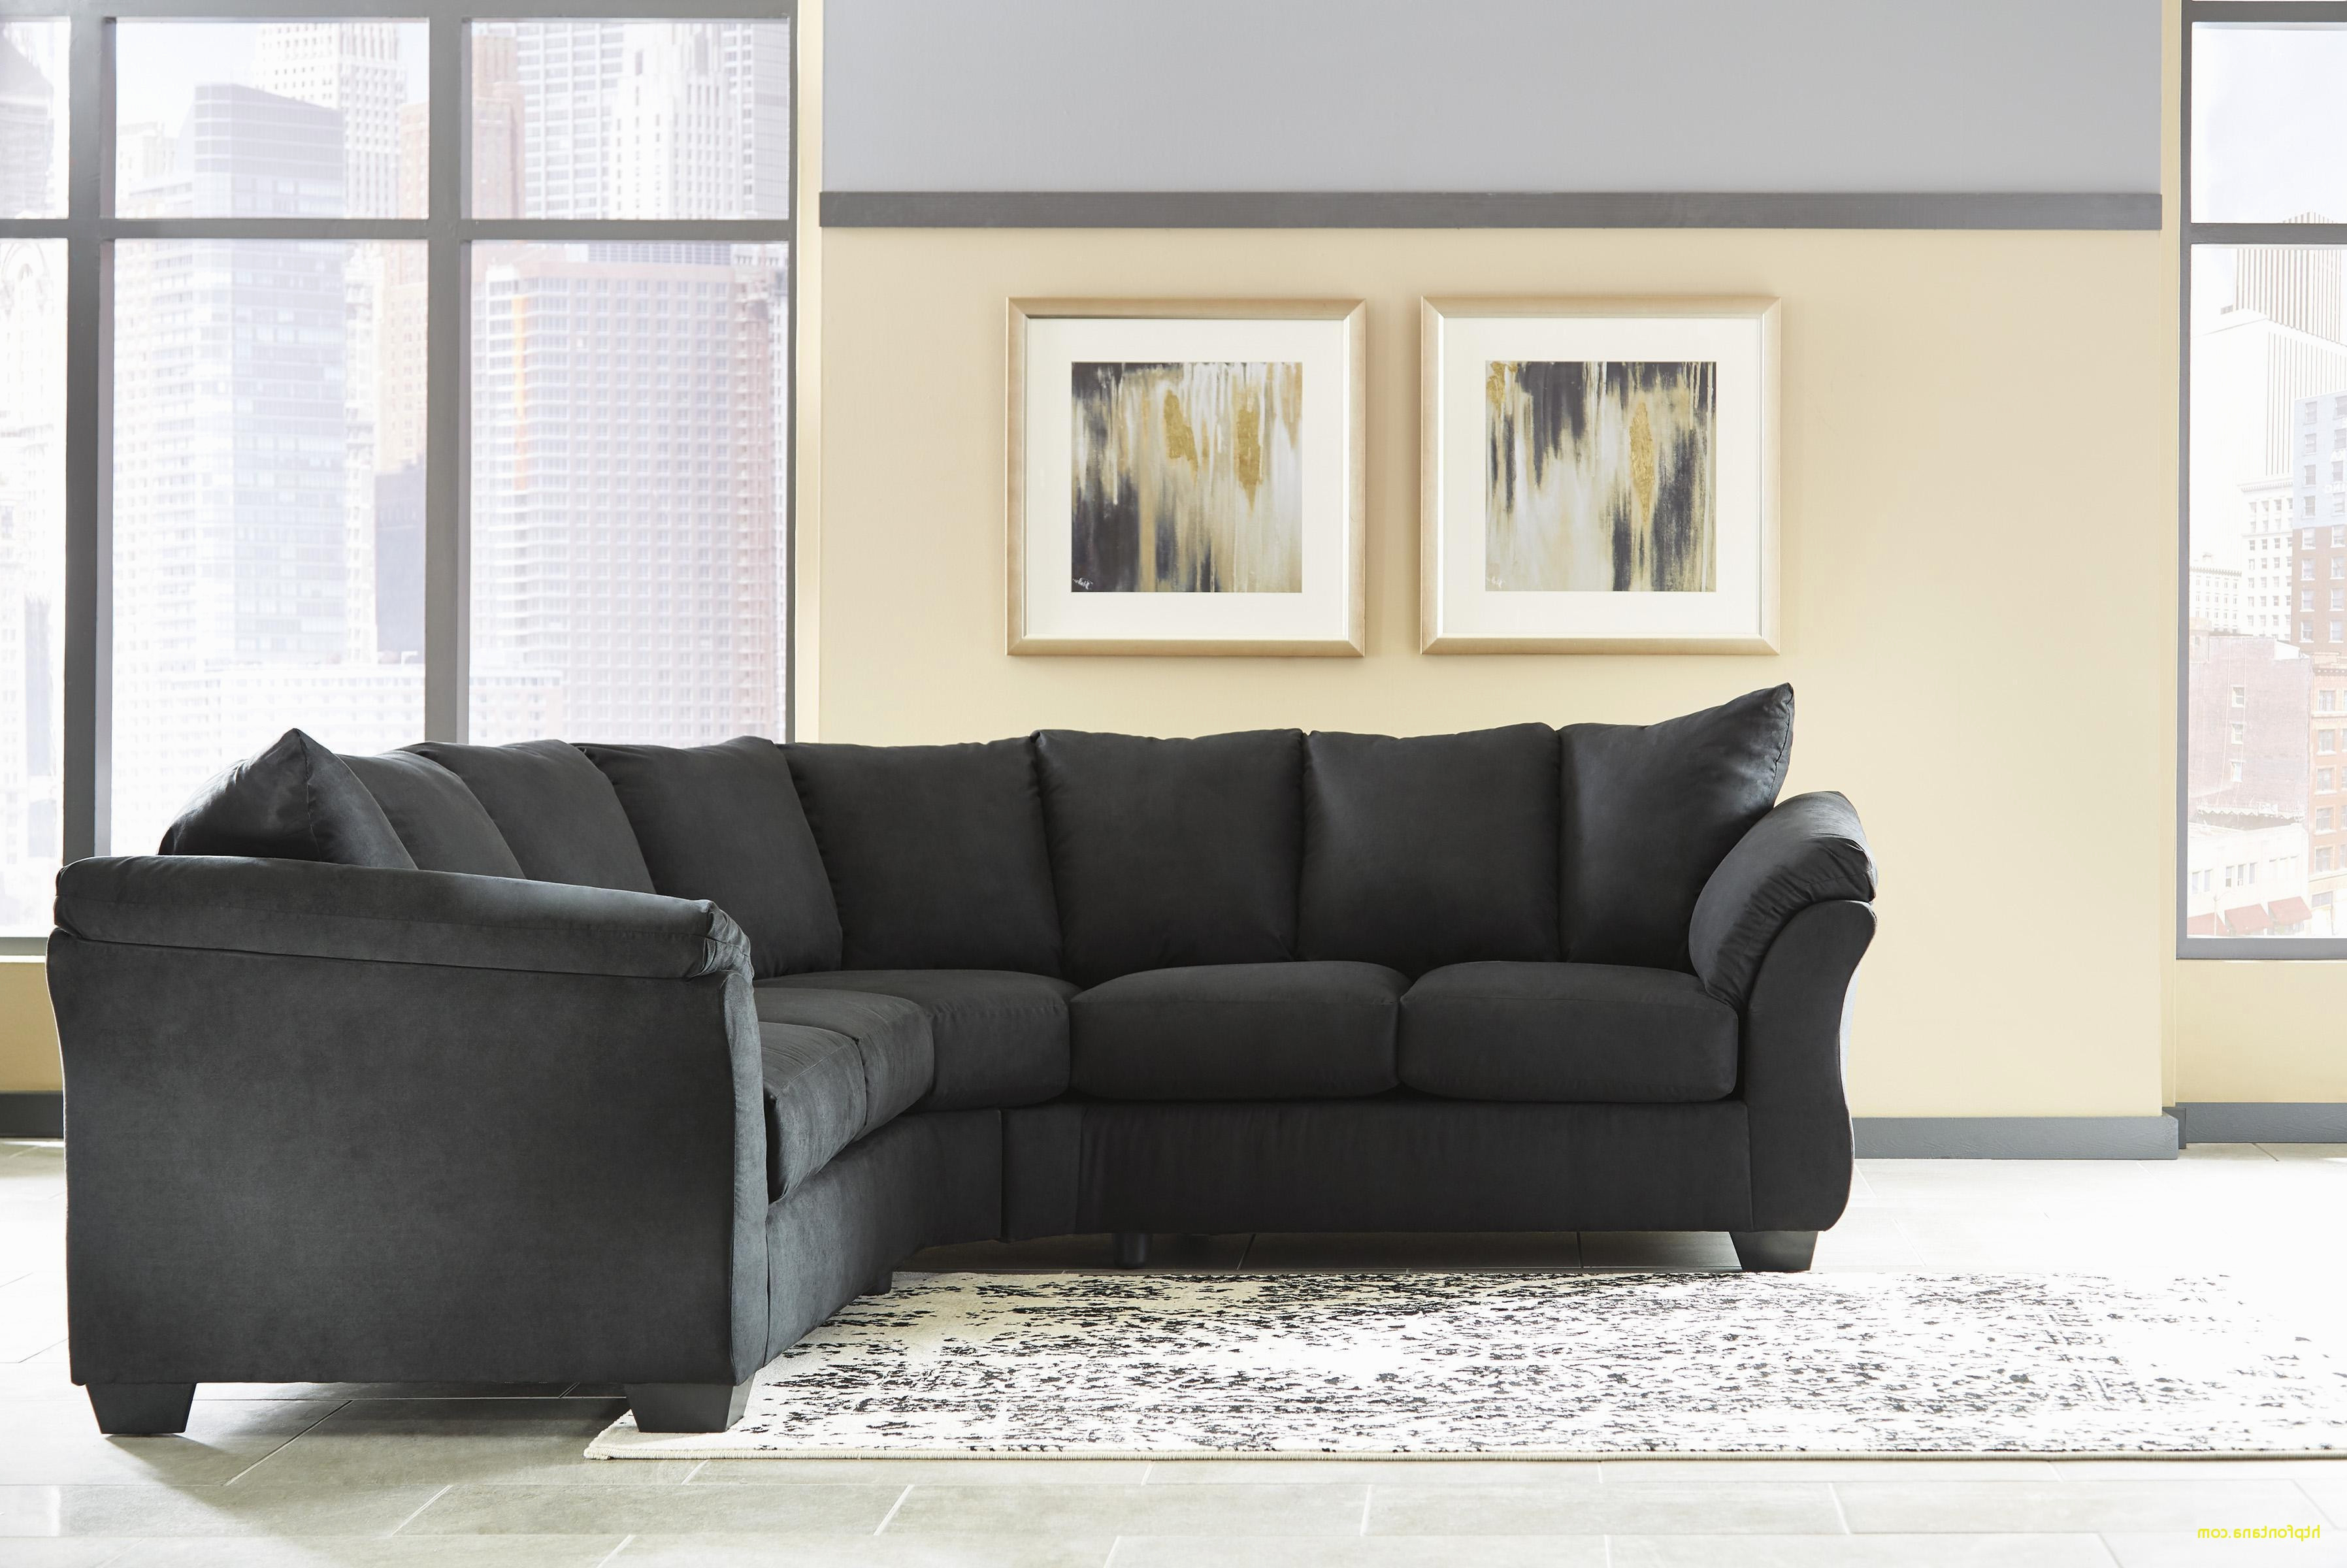 Famous Living Room Sofa With Chaise Elegant Couch Or Sofa Unique Living With Aquarius Light Grey 2 Piece Sectionals With Laf Chaise (Gallery 15 of 20)